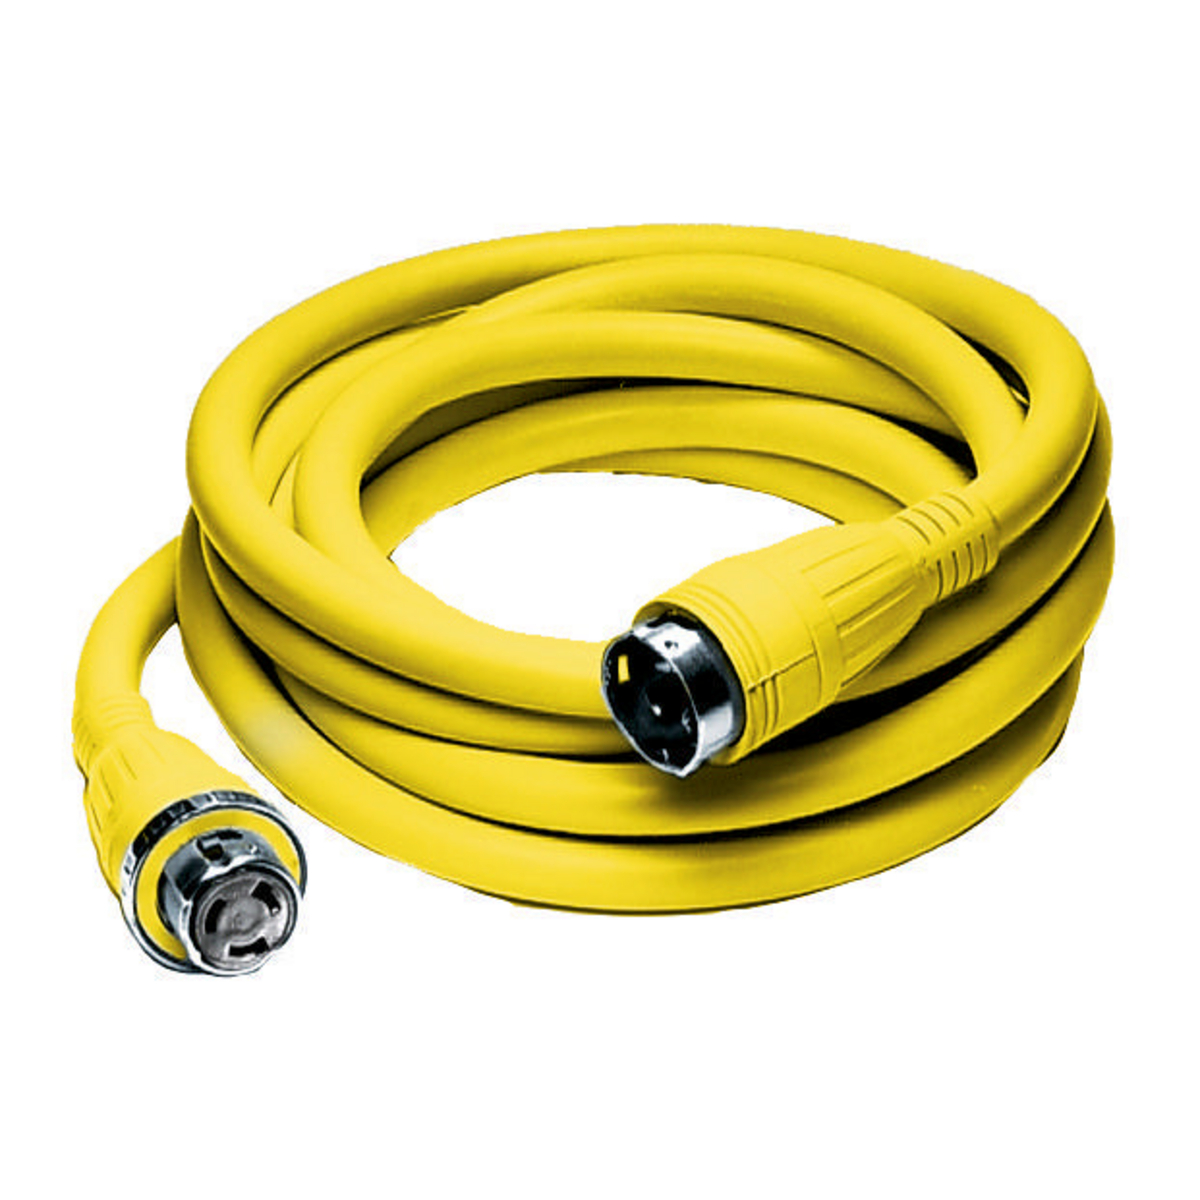 Hubbell HBL61CM52 Marine CABLE, 50', 50A 125/250V, YL